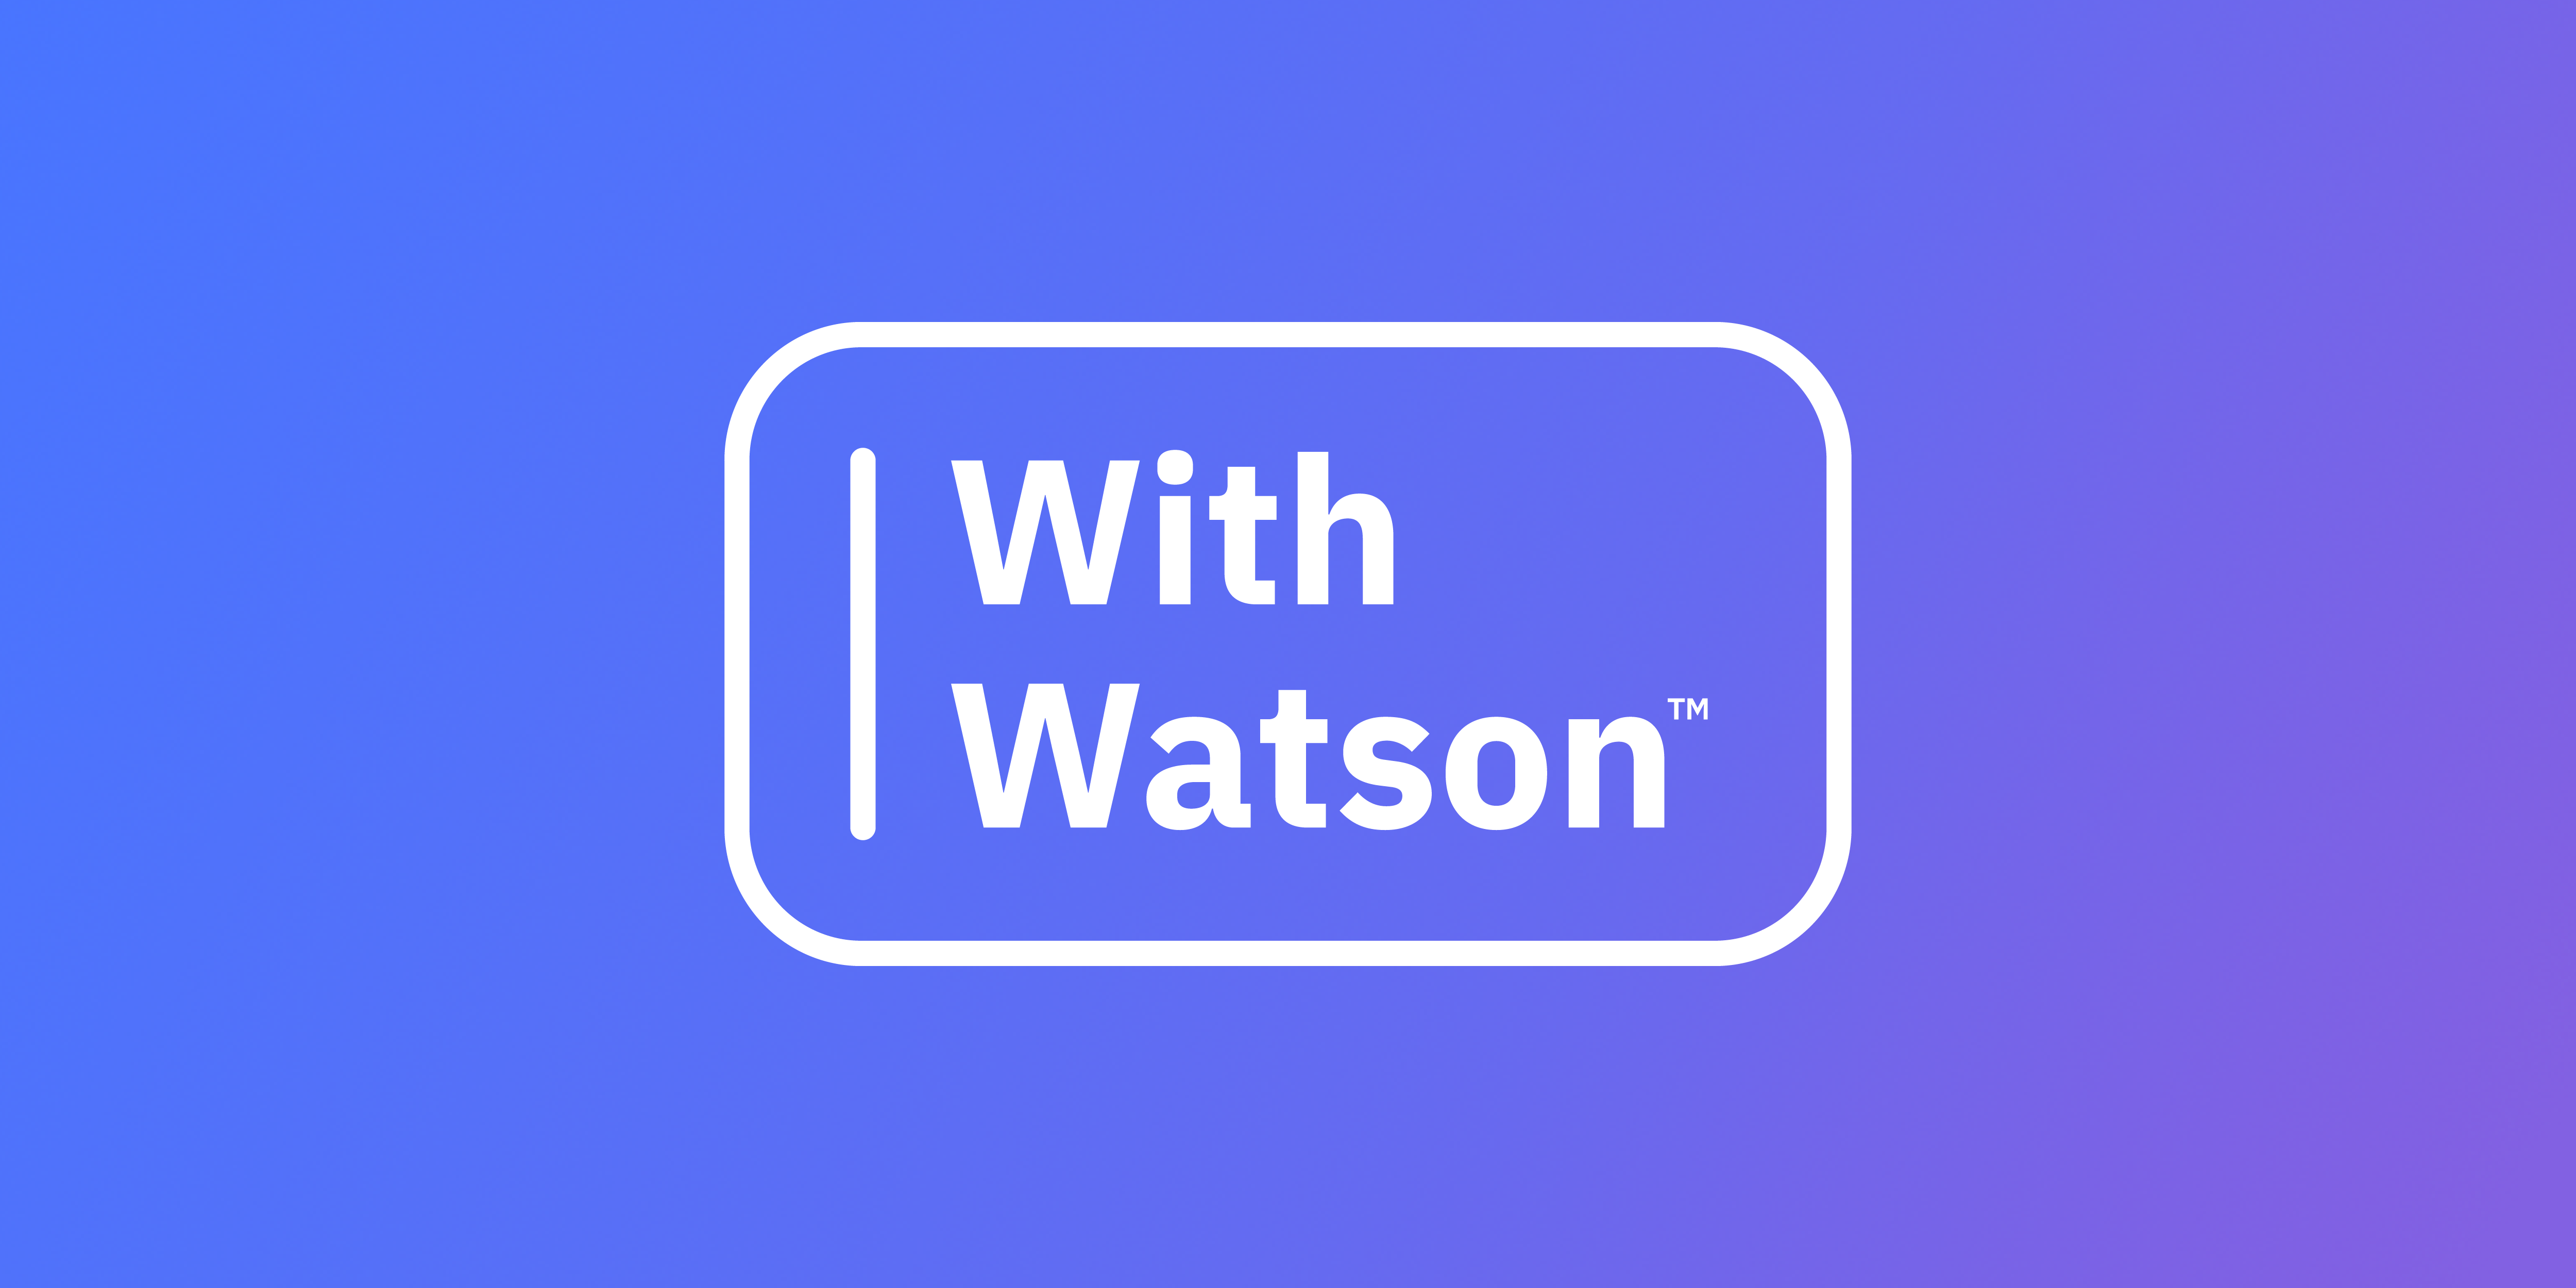 With Watson graphic